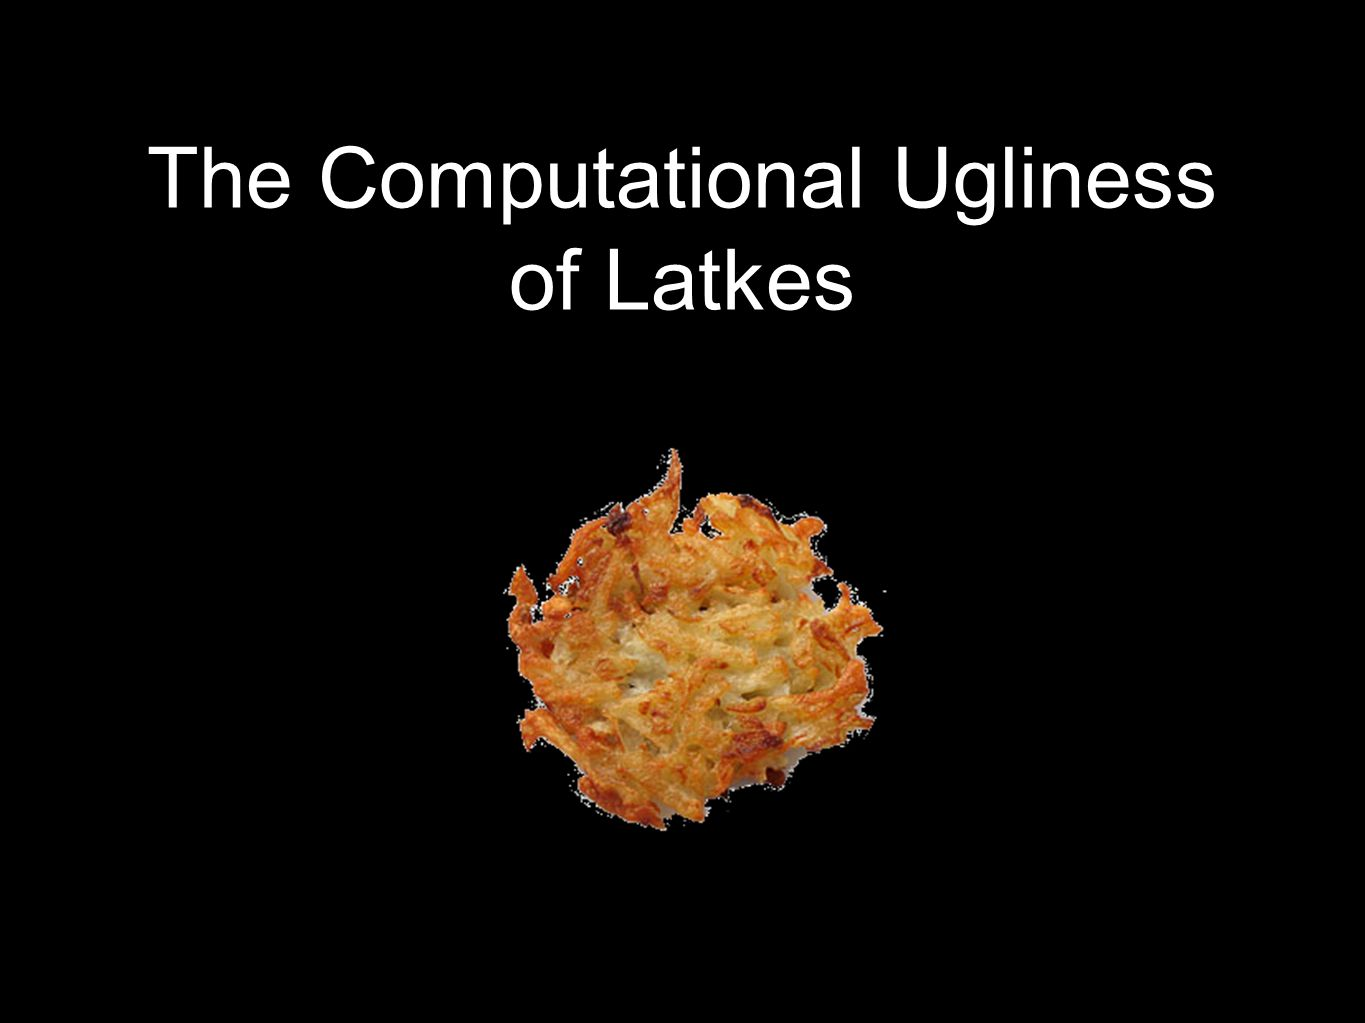 The Computational Ugliness of Latkes